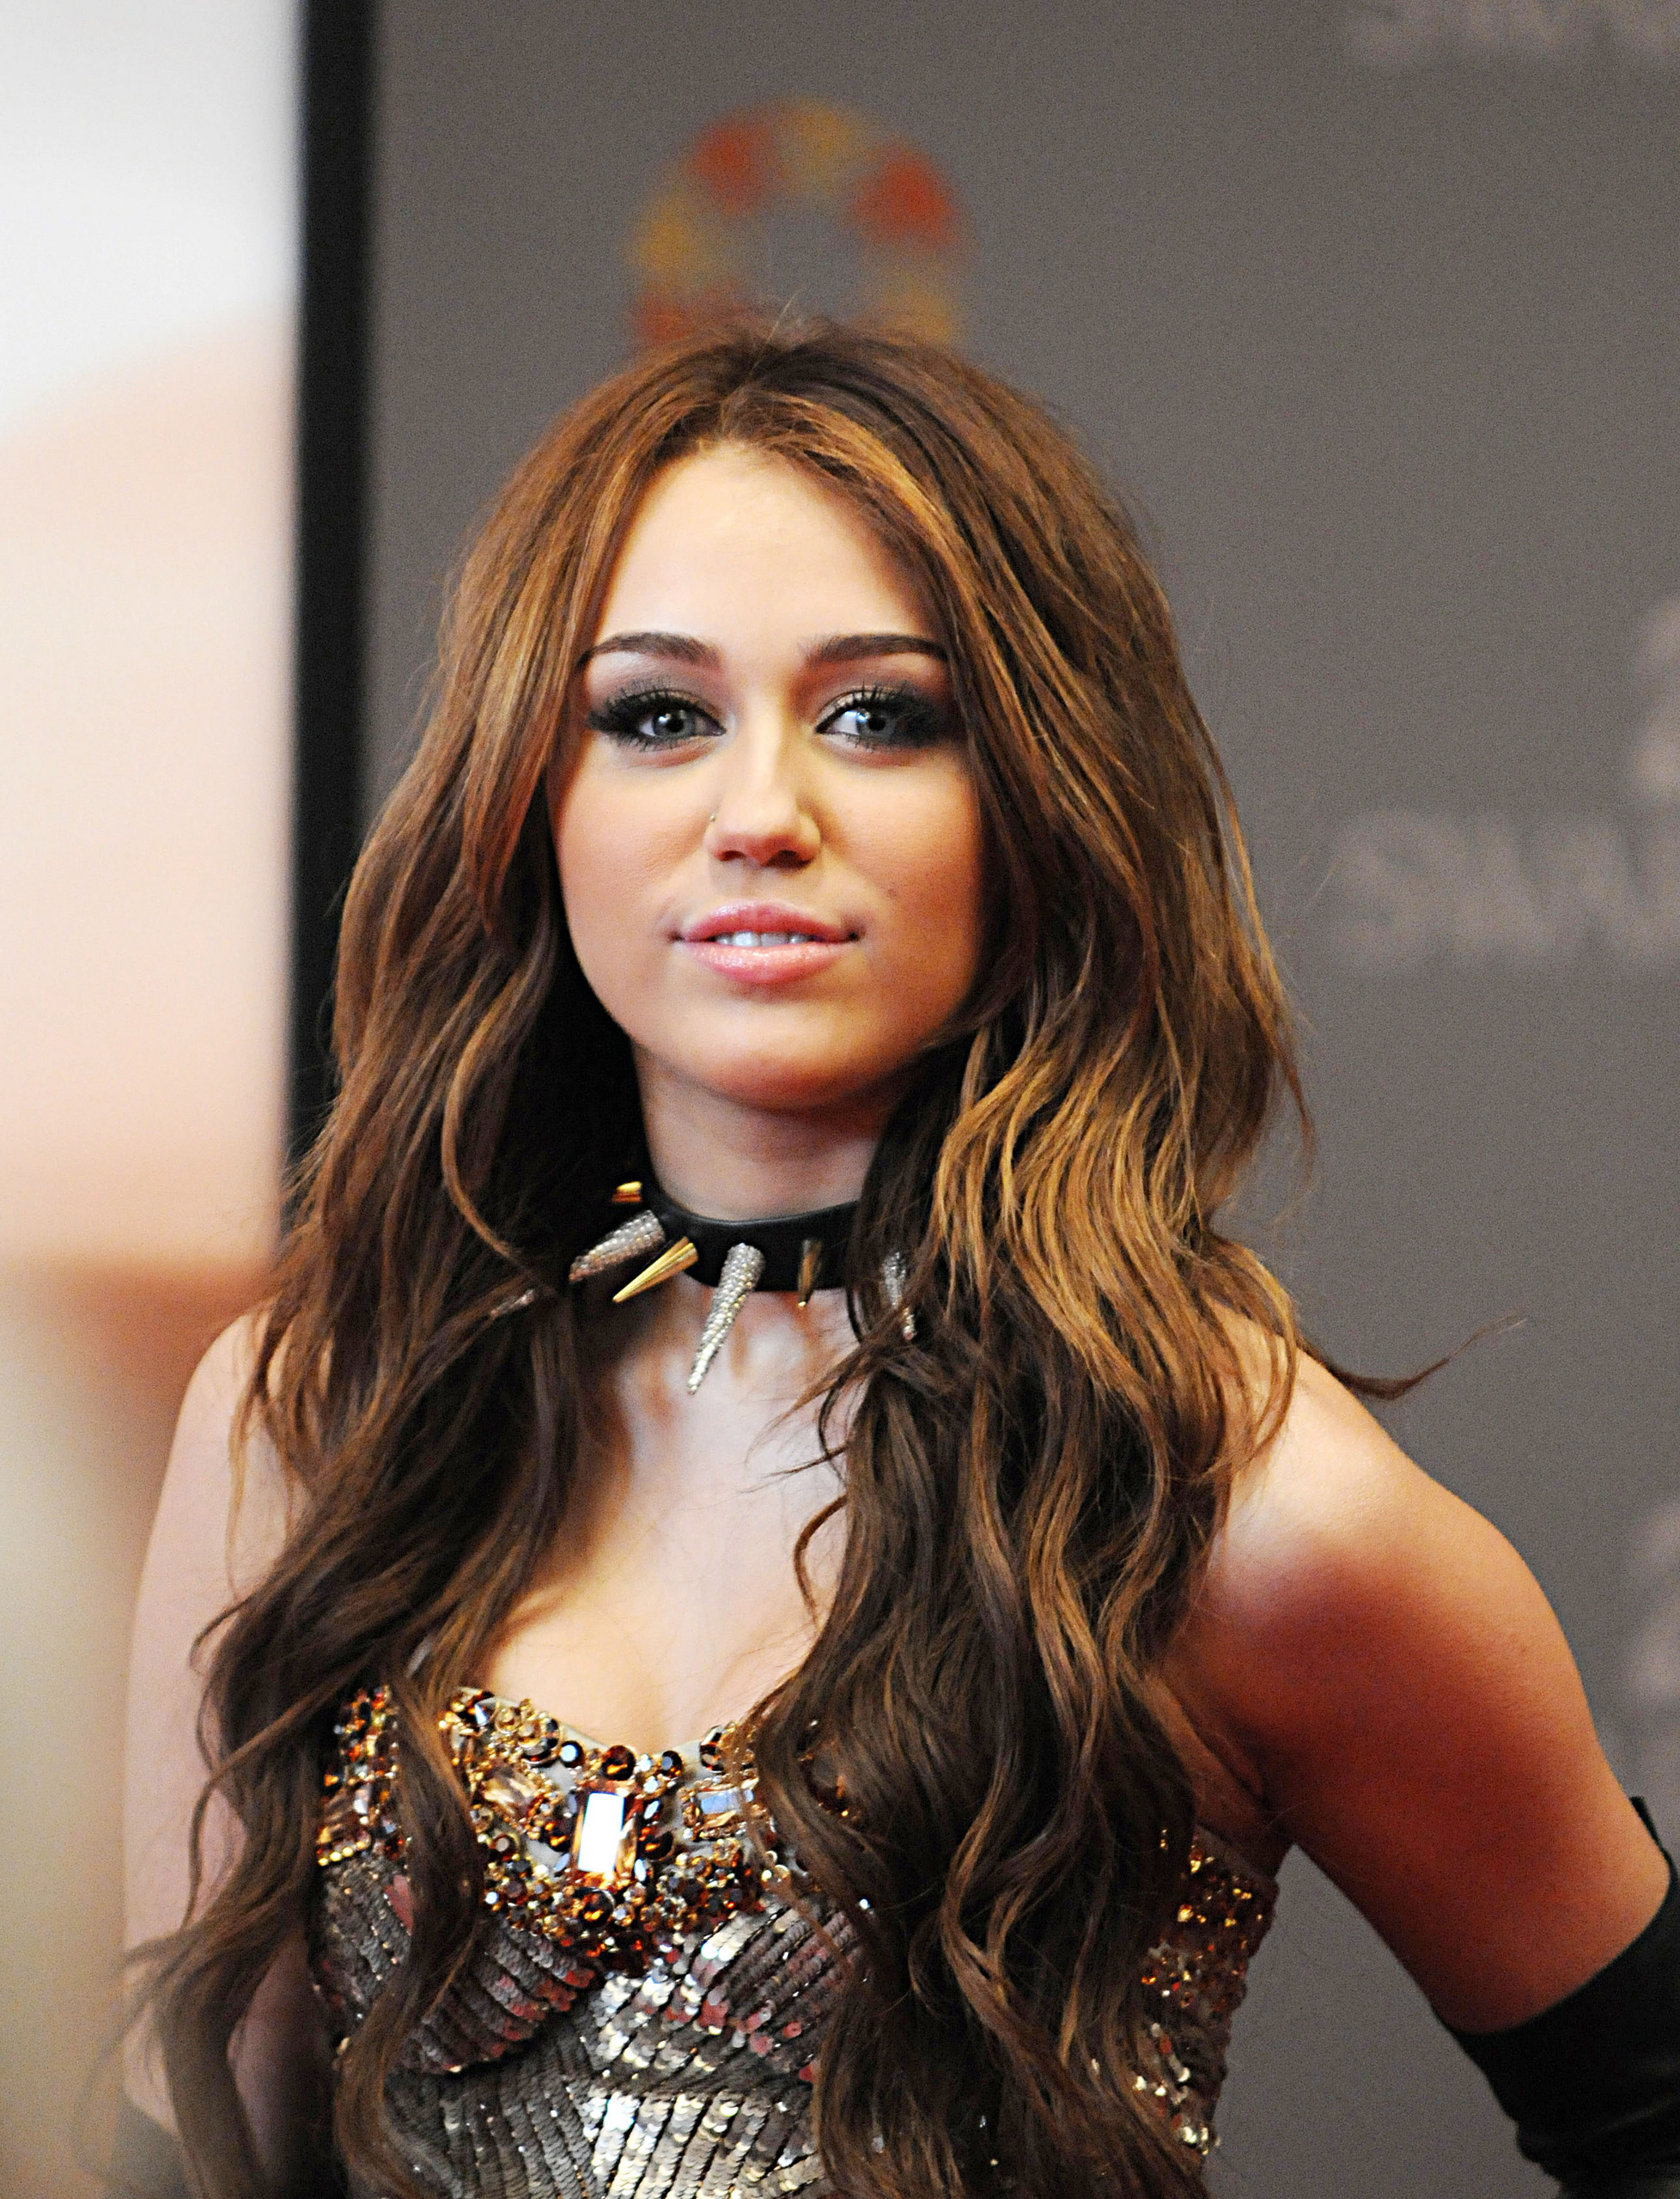 Miley Cyrus - Miley Cyrus Photo (26552515) - Fanpop